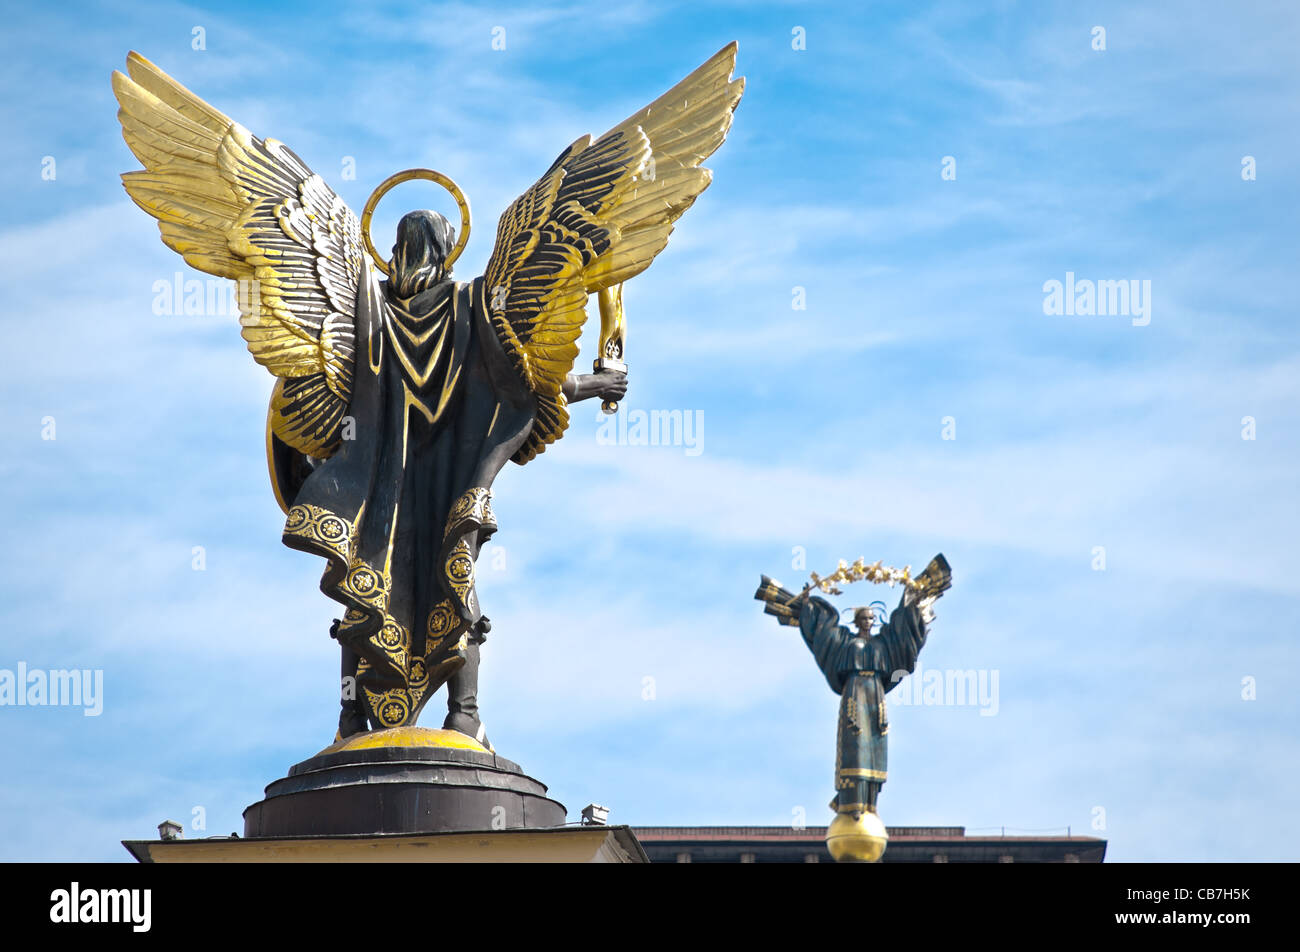 Statue of archangel michael and ukraine national symbol statue on statue of archangel michael and ukraine national symbol statue on independence square in kiev biocorpaavc Images